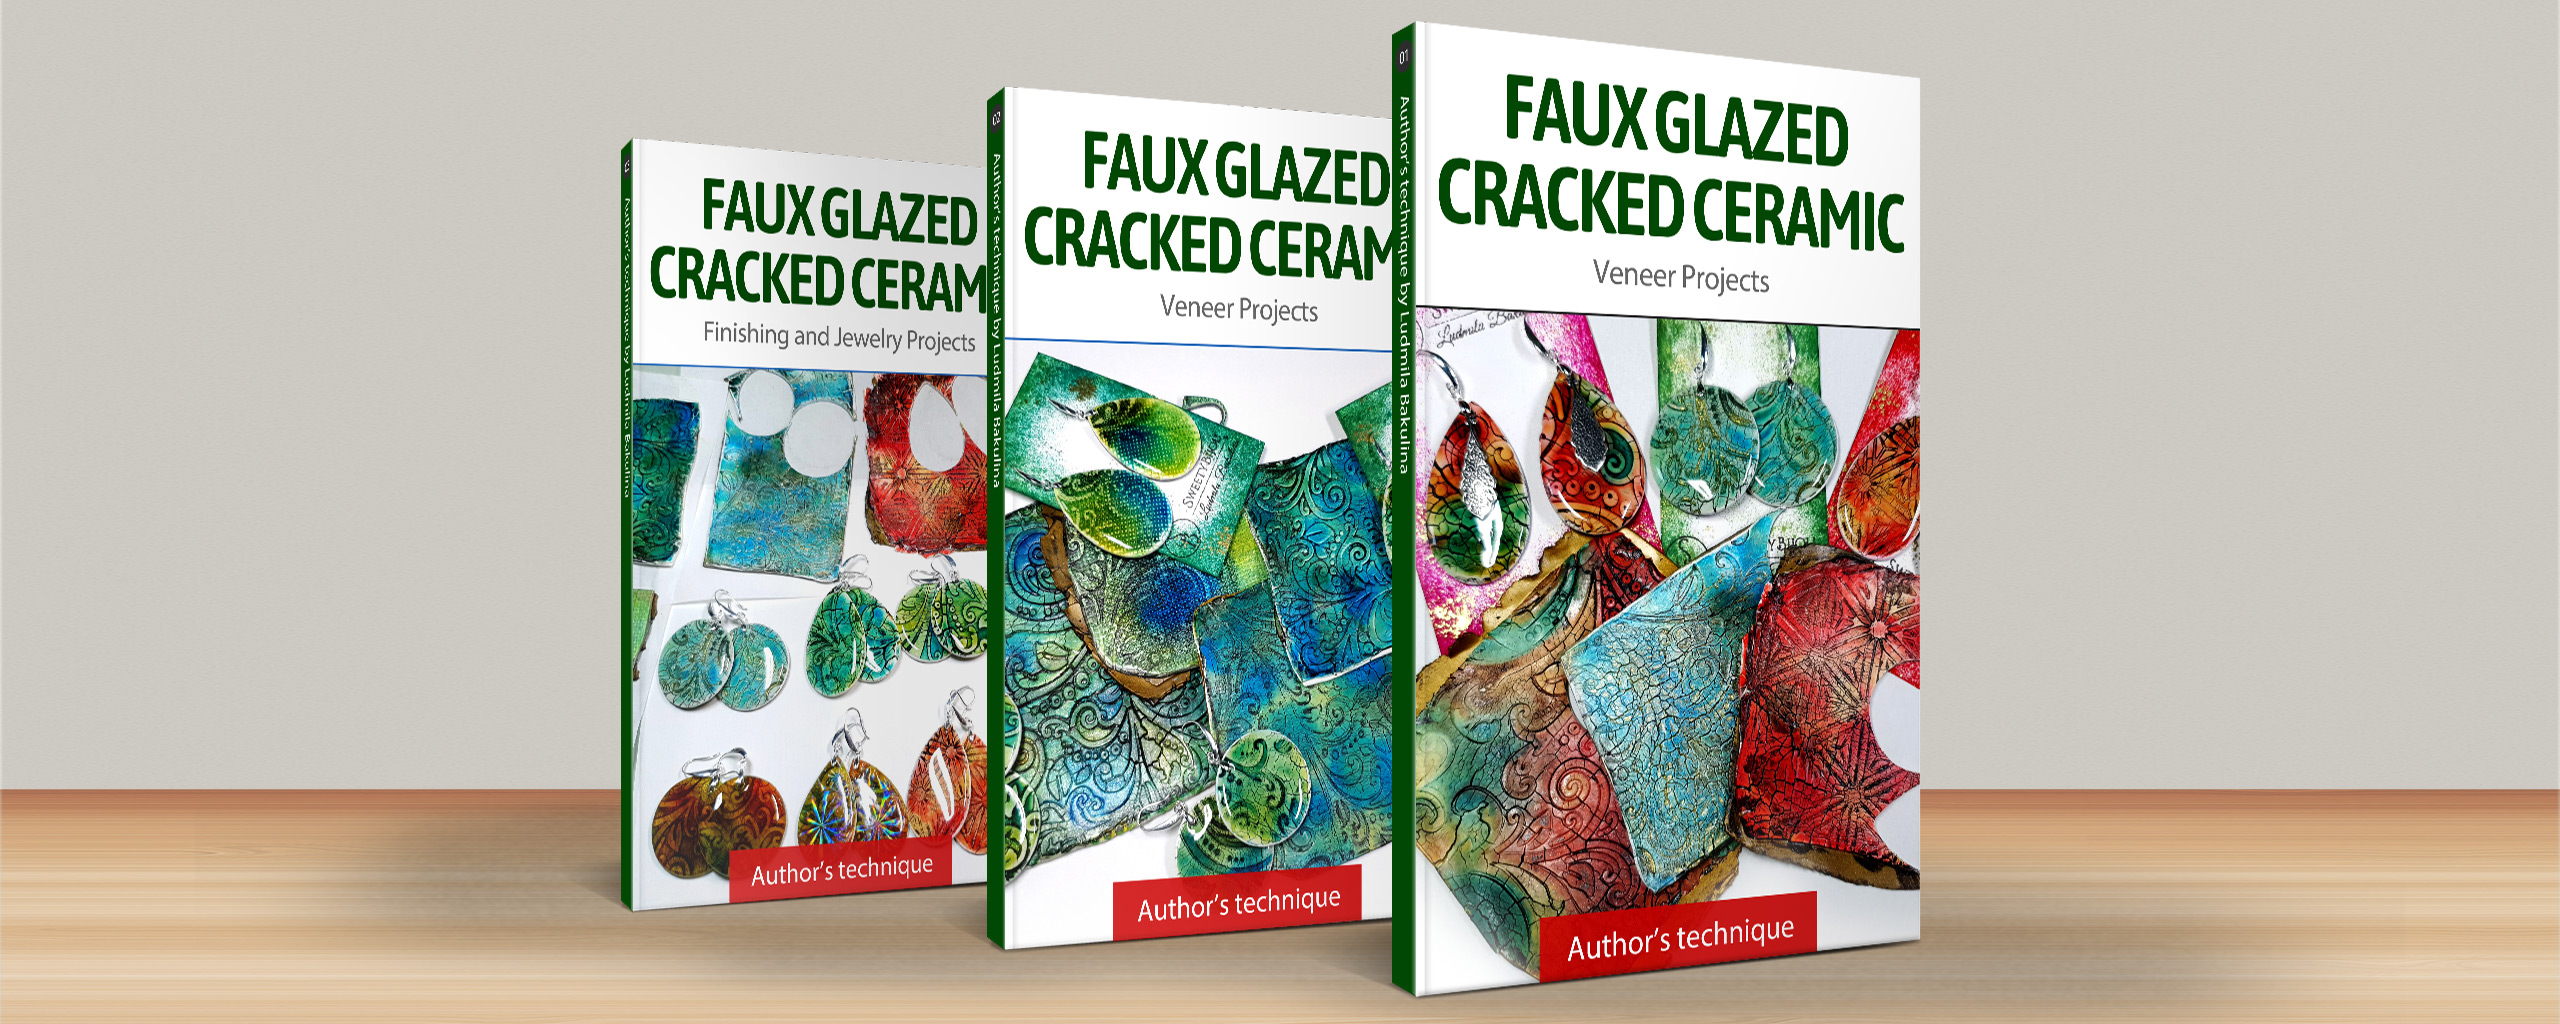 Faux Glazed Cracked Ceramic – Surface Technique